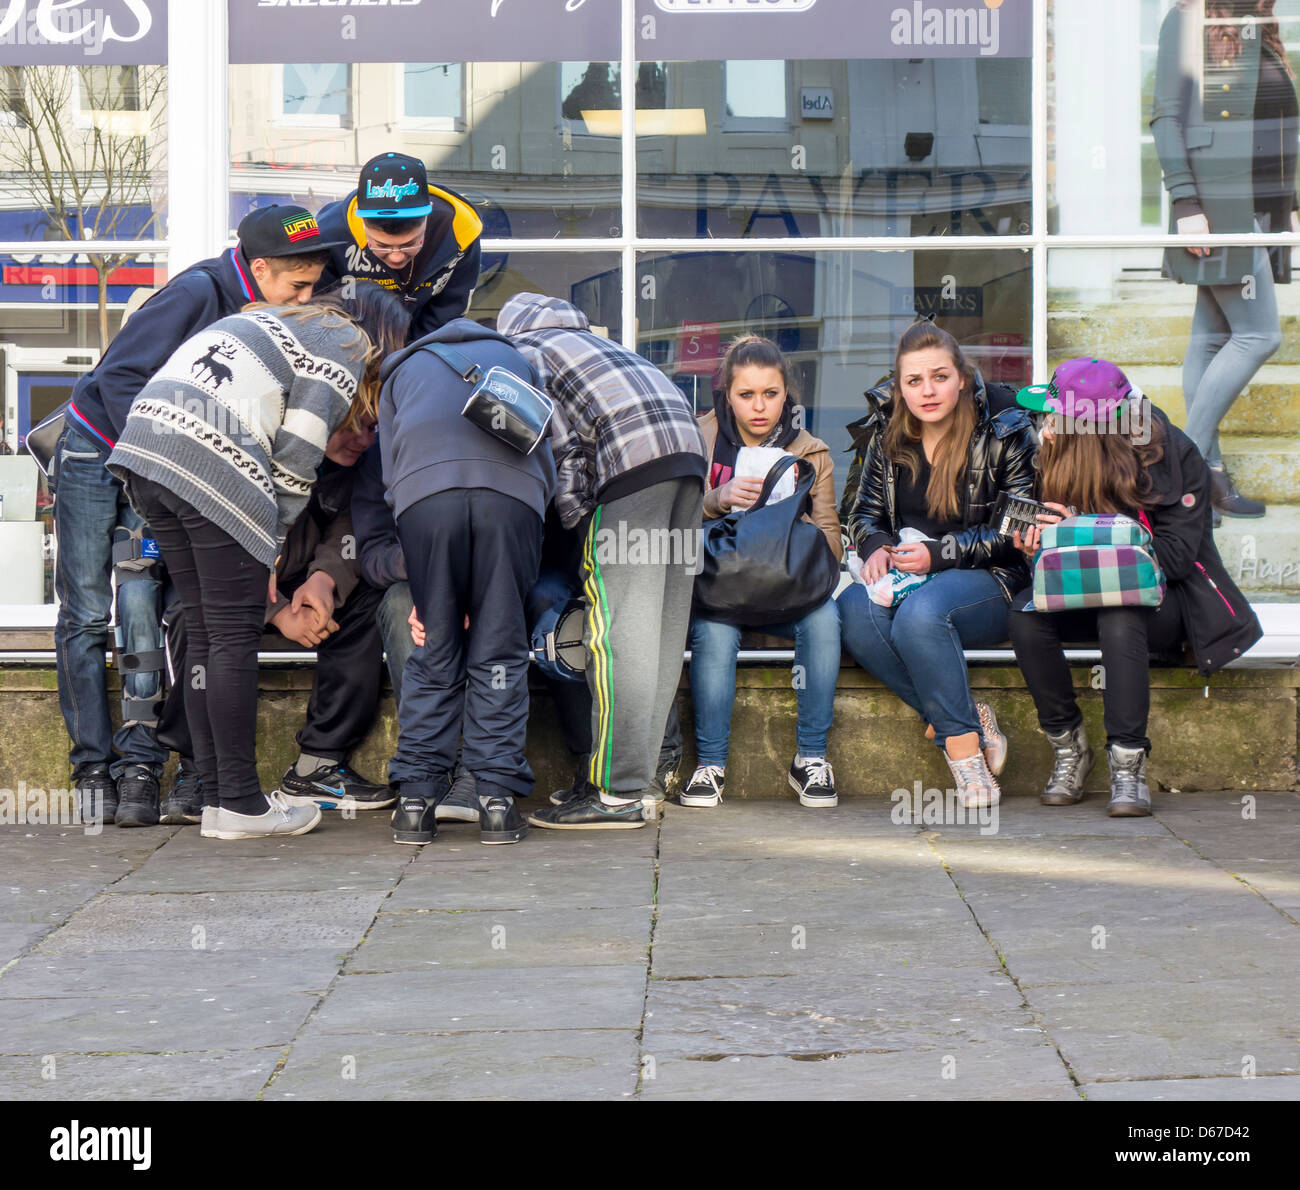 Group of Teenagers Adolescents Gathering Loitering - Stock Image